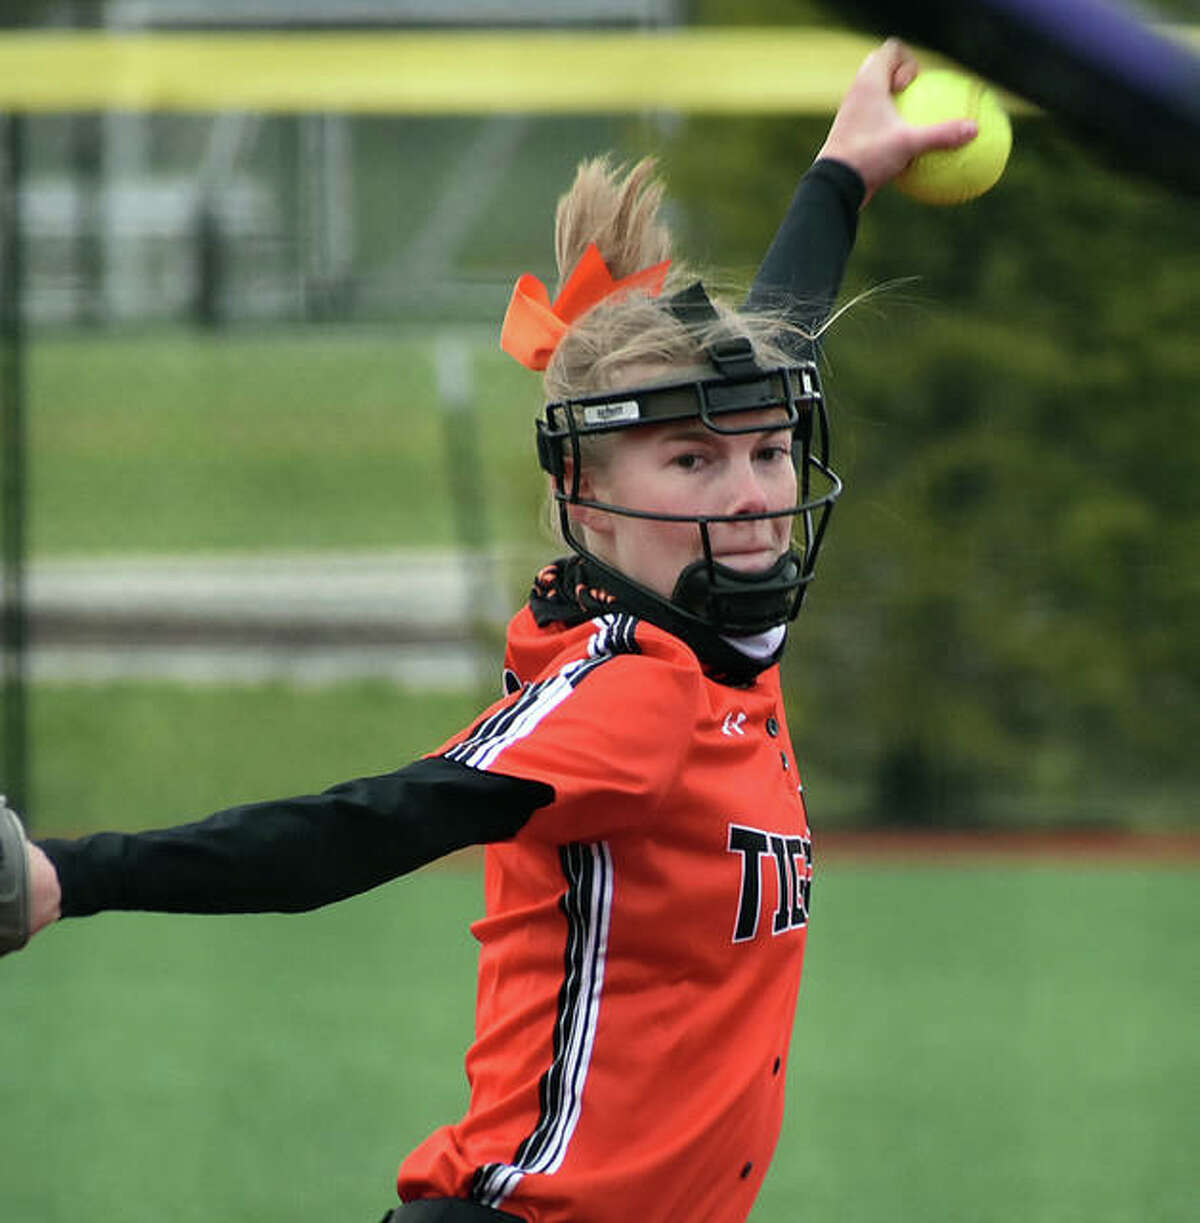 Edwardsville starting pitcher Ryleigh Owens with a first-inning pitch to a Southwestern hitter during Wednesday's game at Plummer Family Park in Edwardsville.